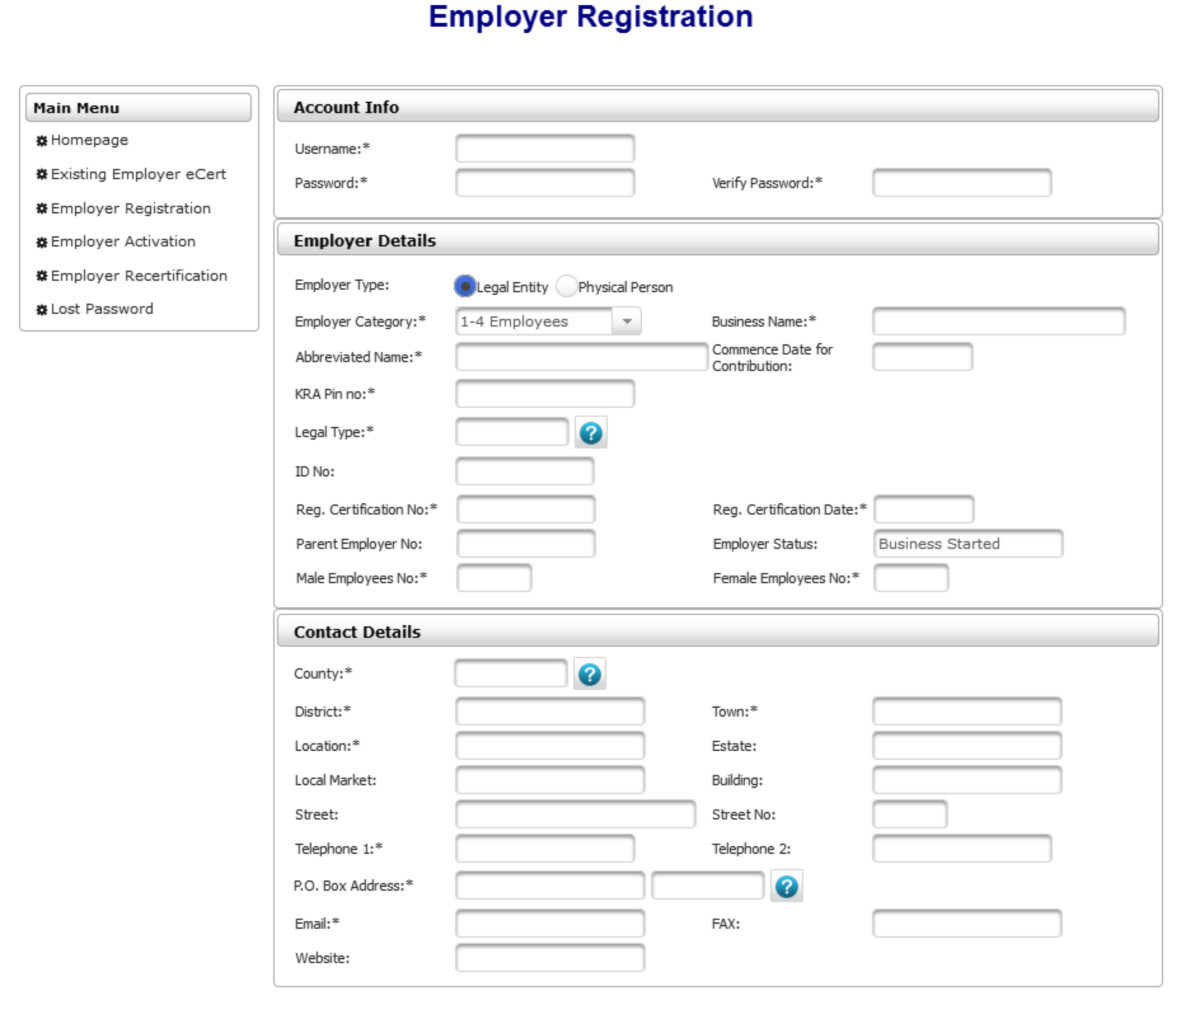 How to Prepare an NSSF Payment Slip for an Employer